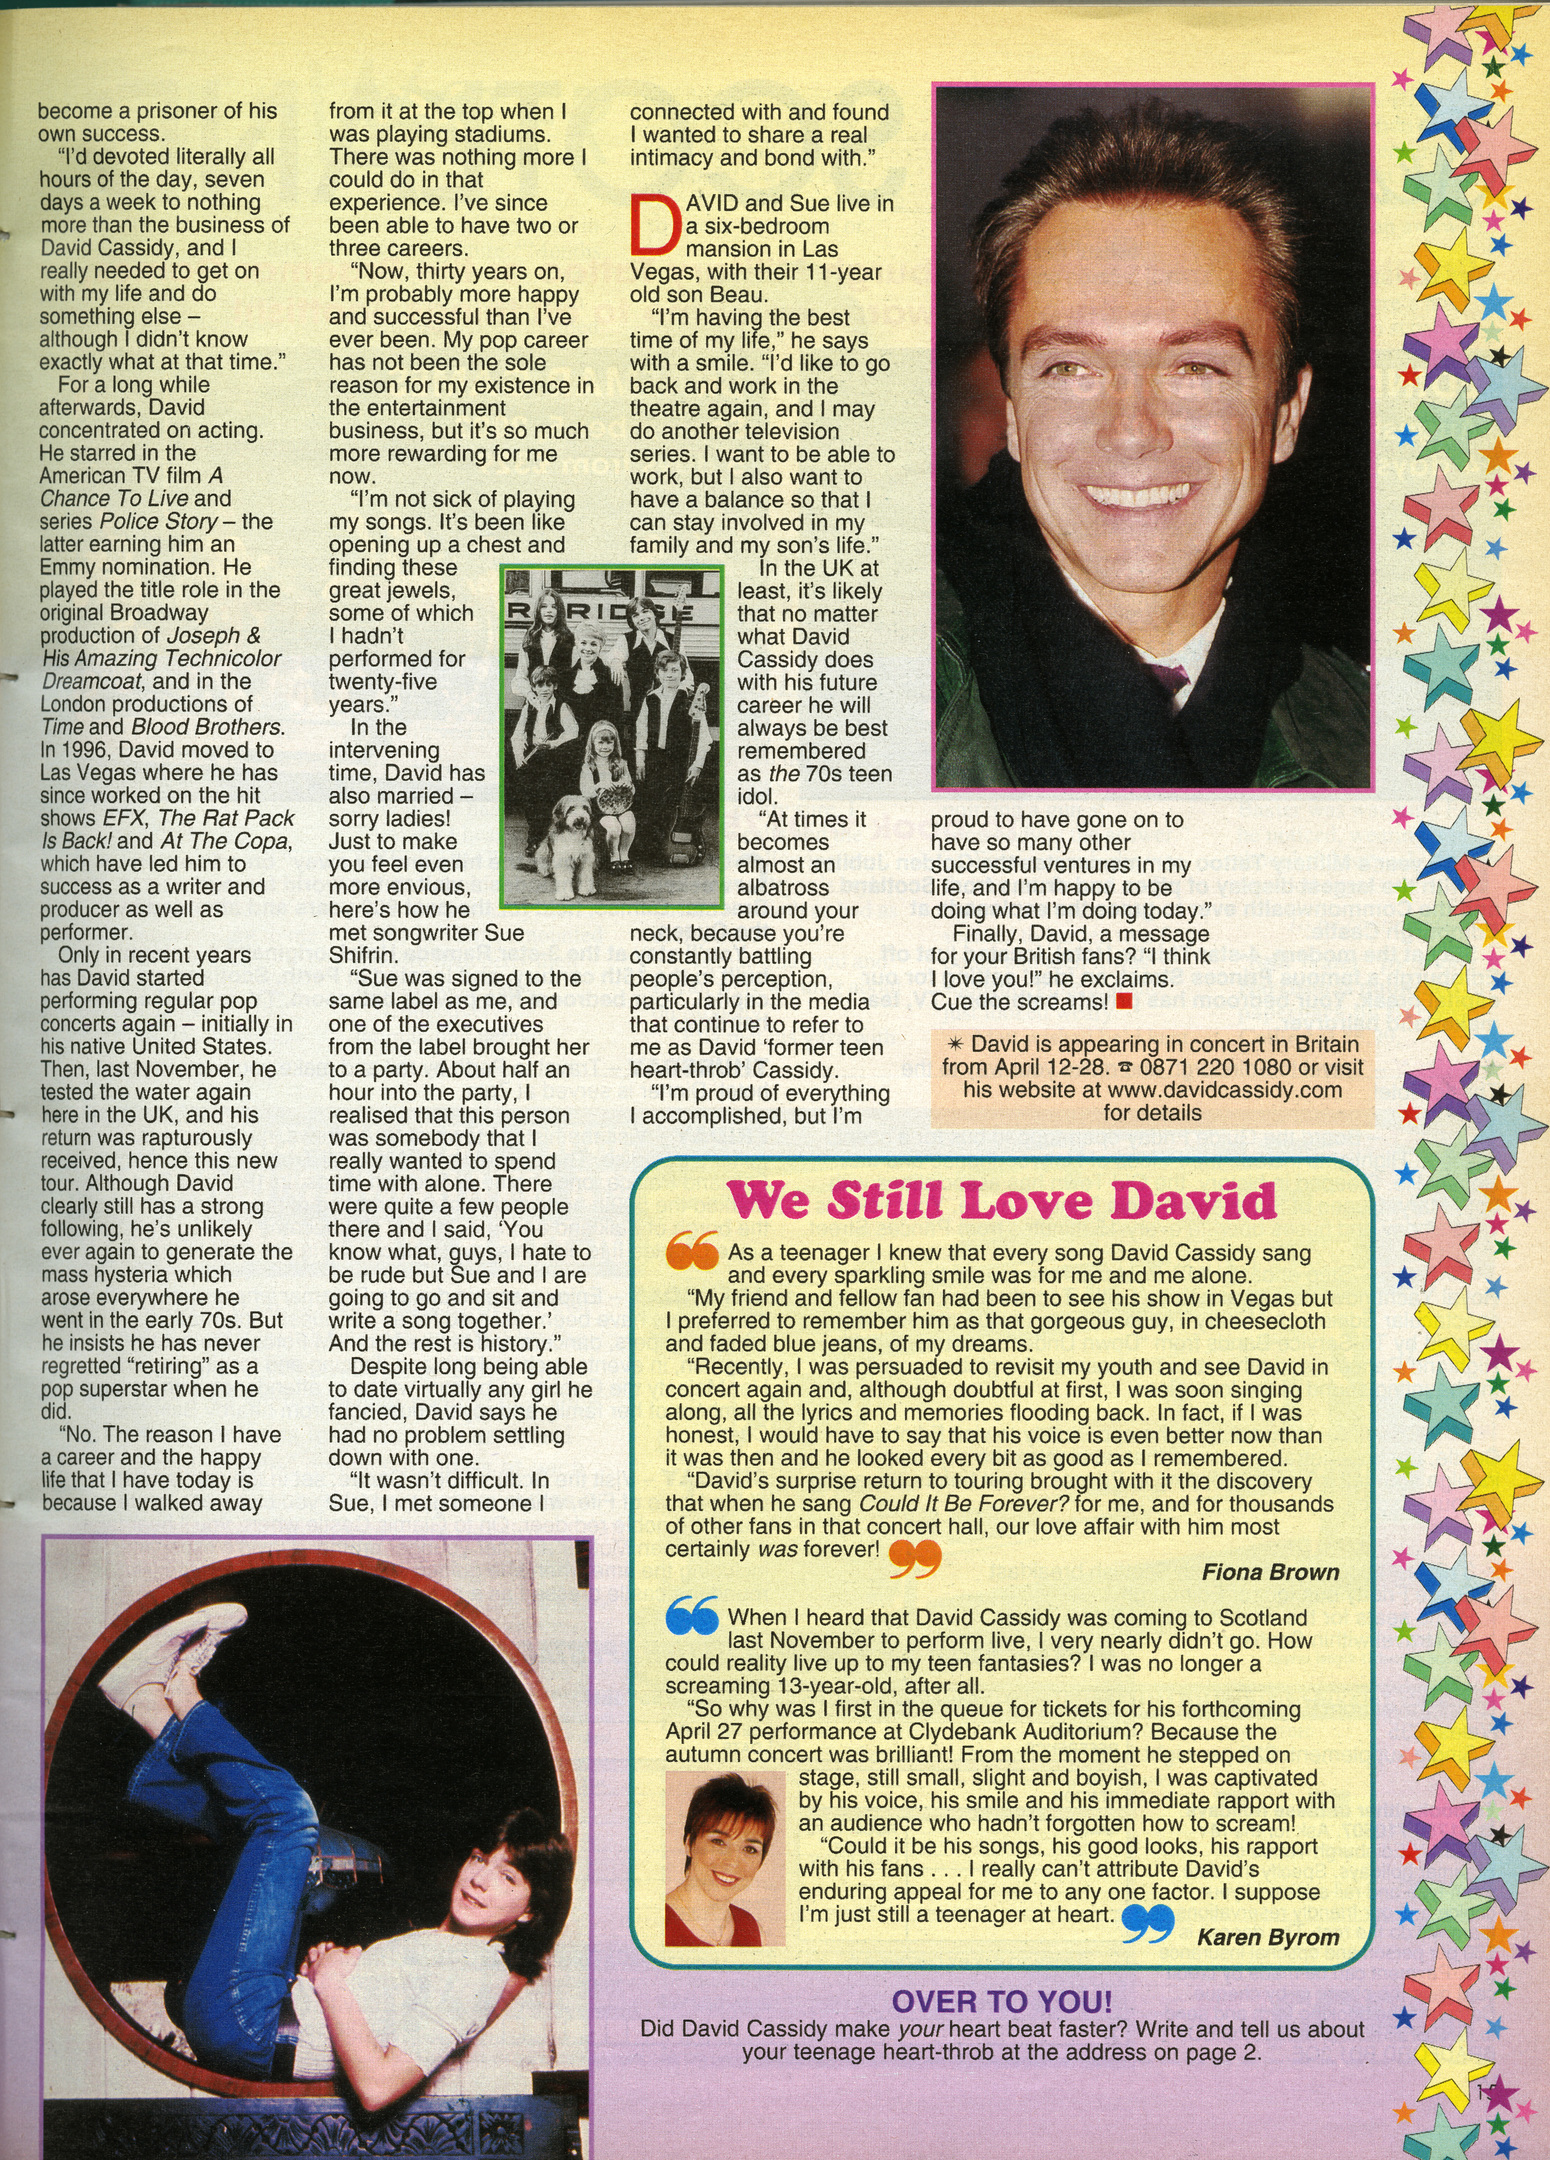 pictures of David Cassidy